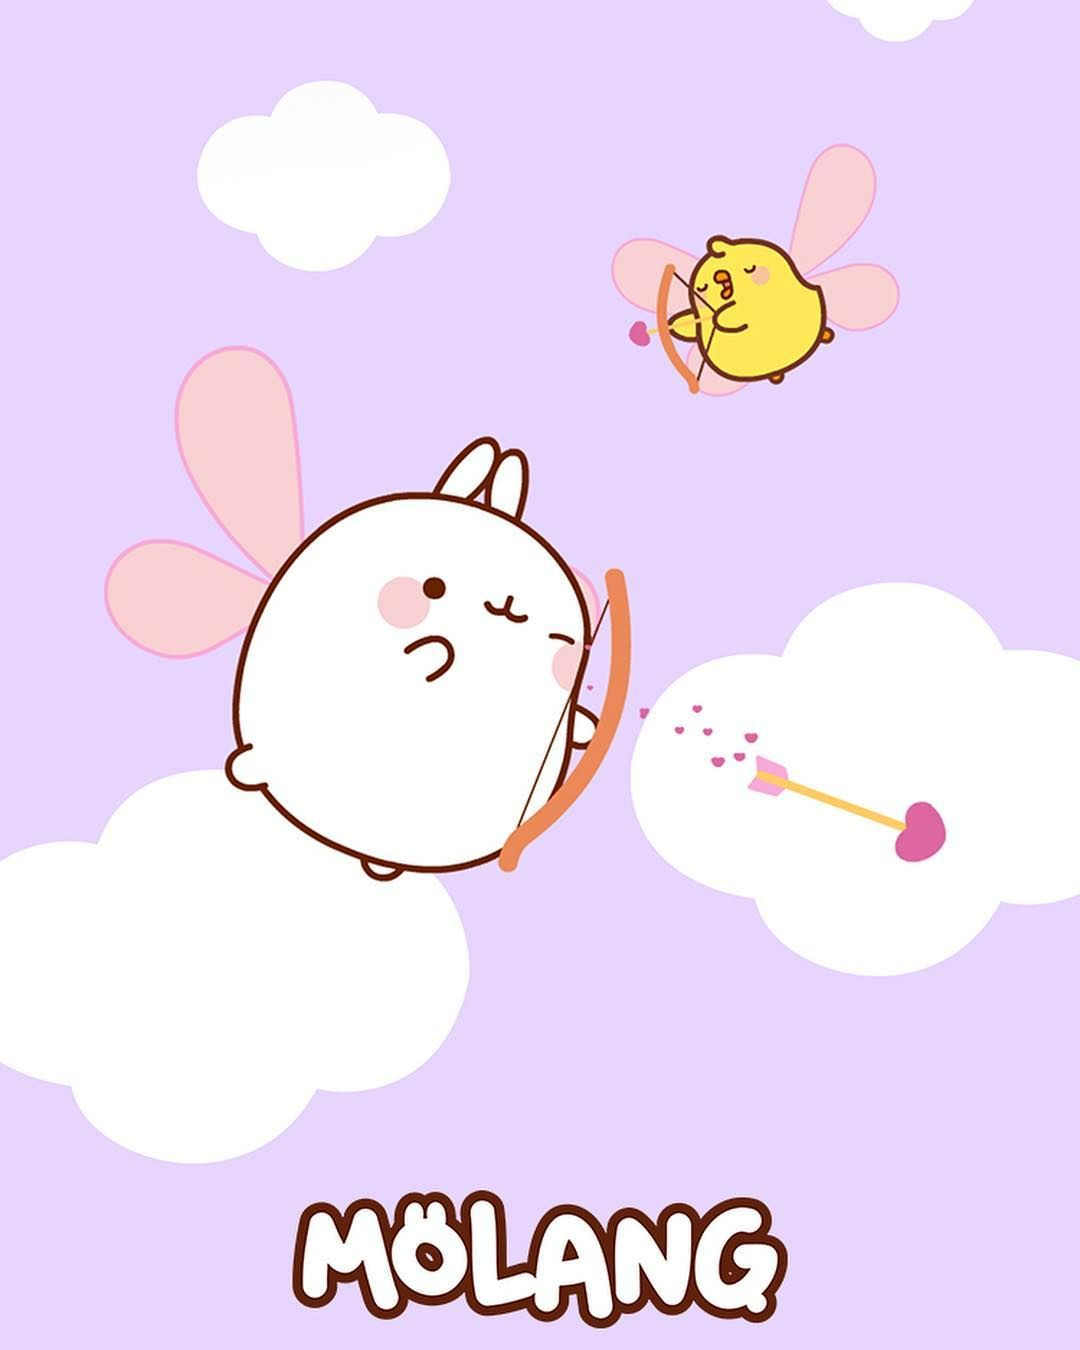 Wanna Give Your Phone A Super Cute Vibe Here Are Some Adorable Molang Wallpapers Download Them On Our Facebo Molang Molang Wallpaper Cute Little Drawings